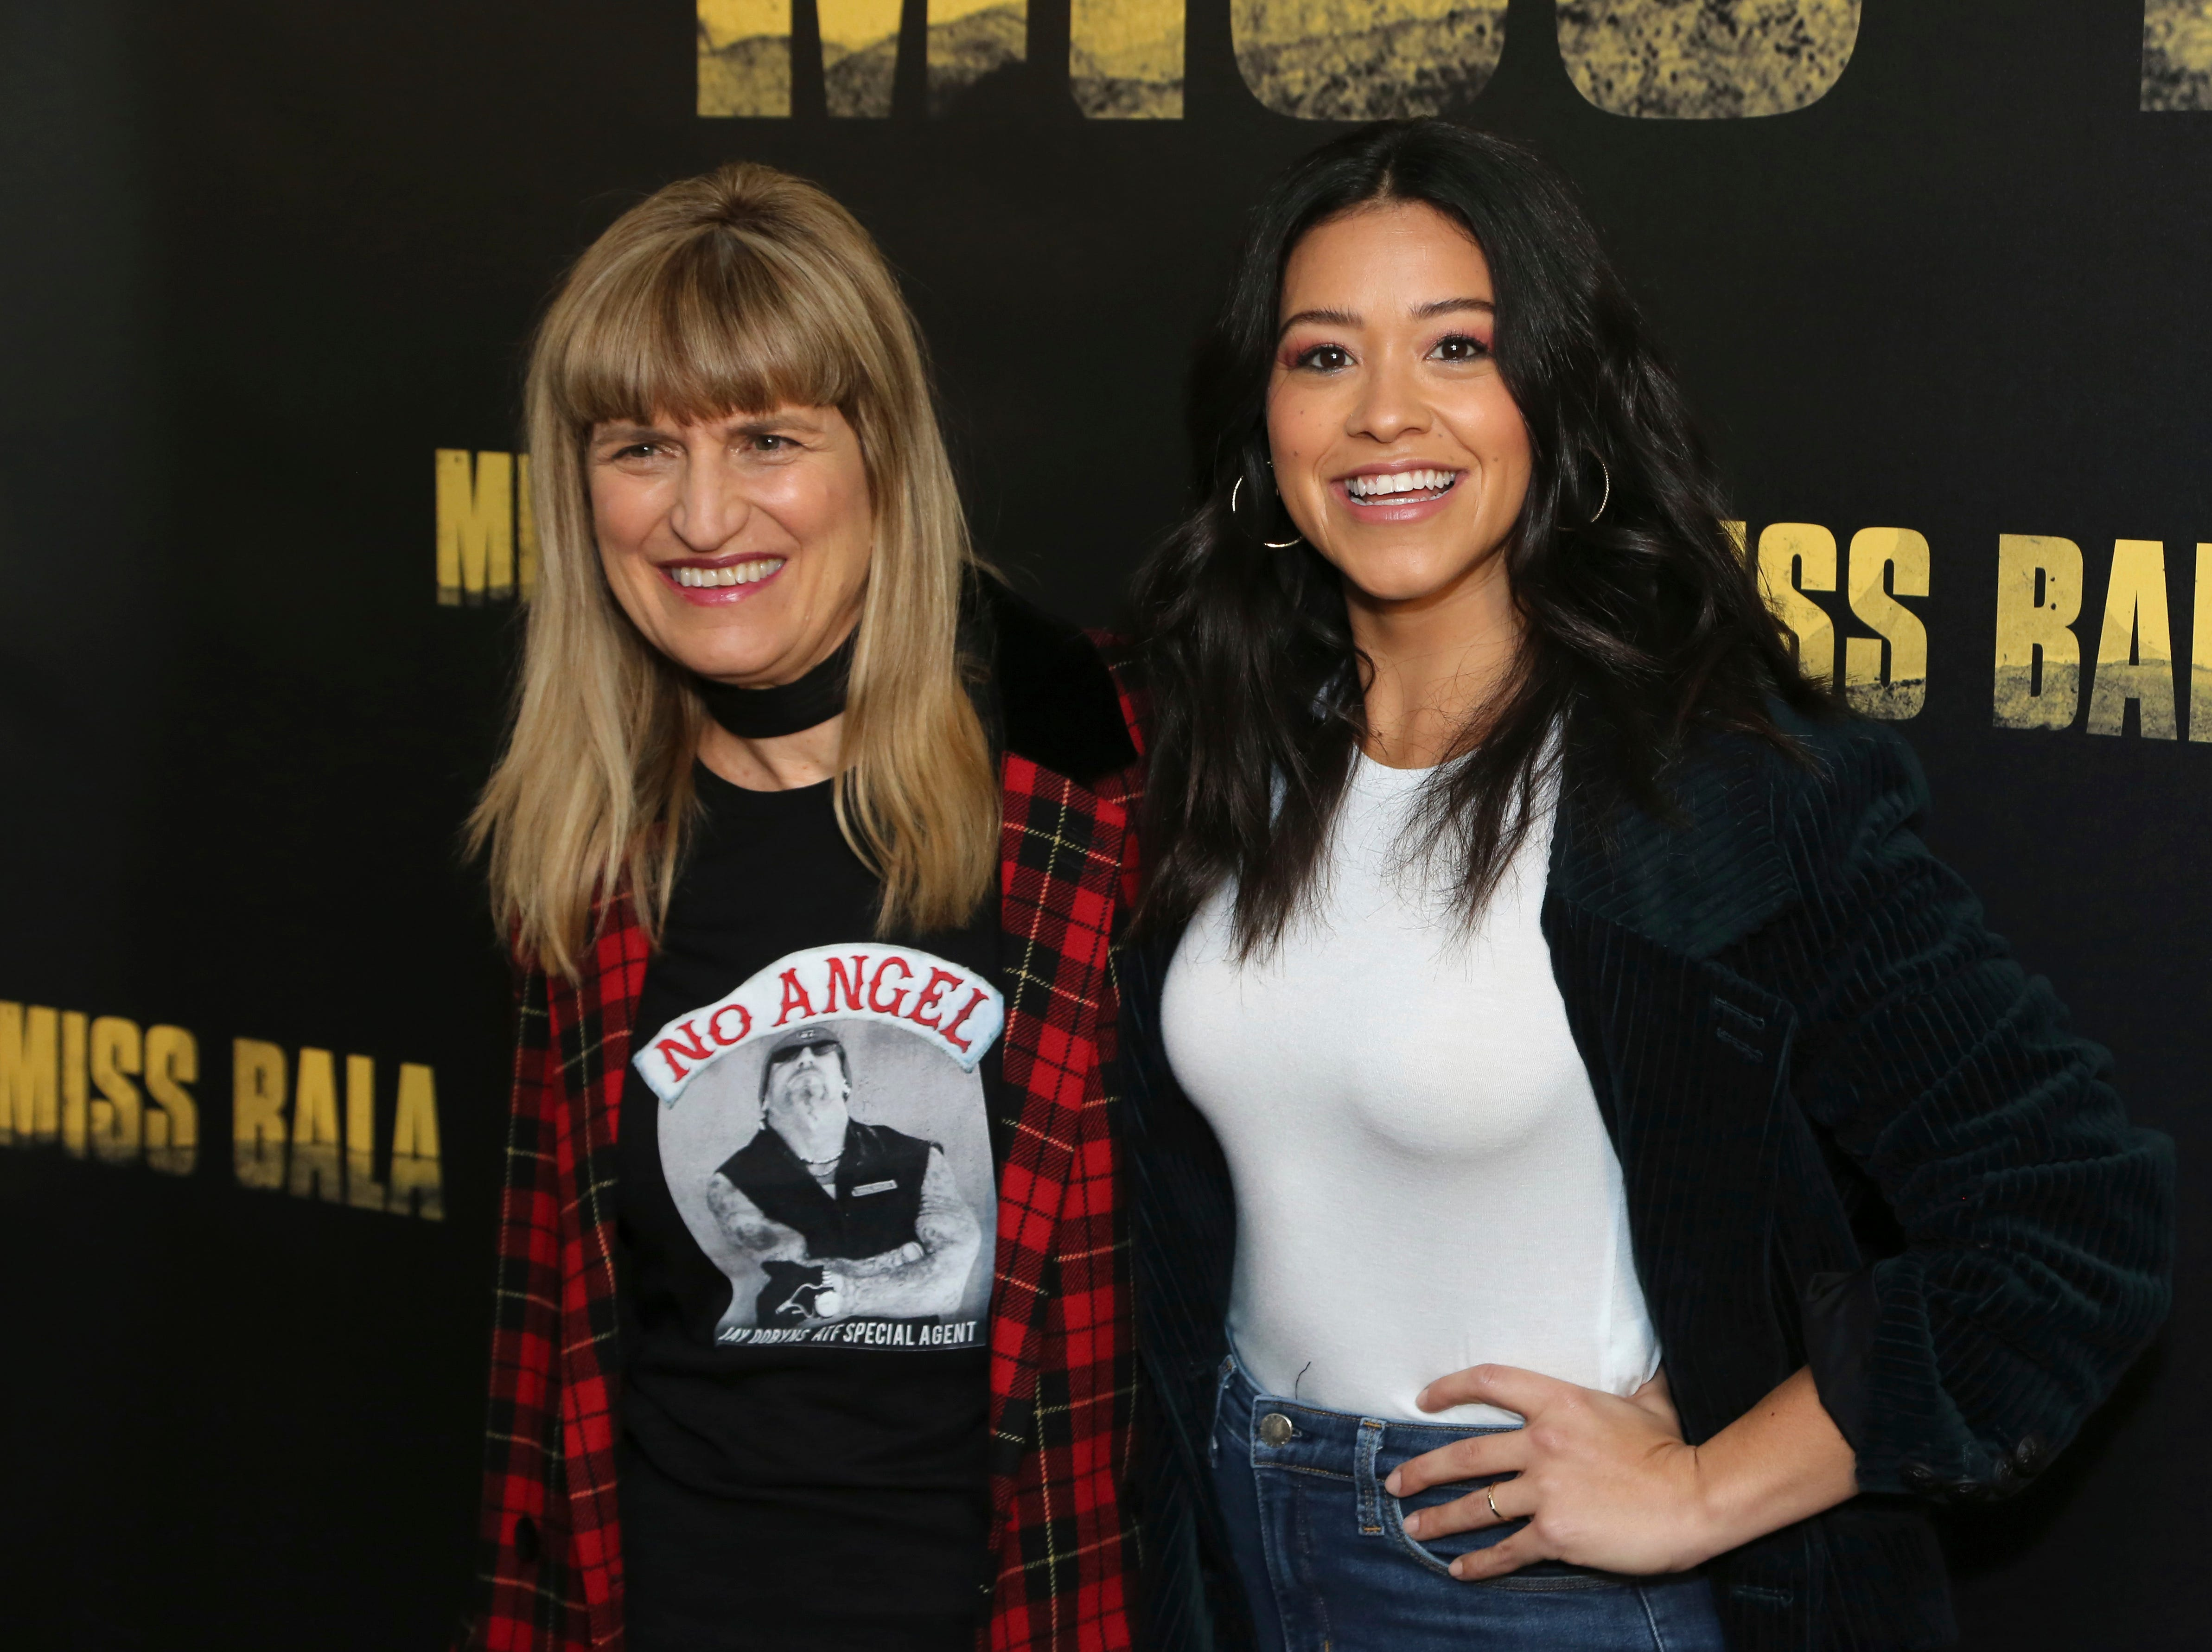 """Director Catherine Hardwicke, left, and Gina Rodriguez pose for a photo at the """"Miss Bala"""" Photo Call at The London West Hollywood on Sunday, Jan. 13, 2019 in West Hollywood, Calif."""